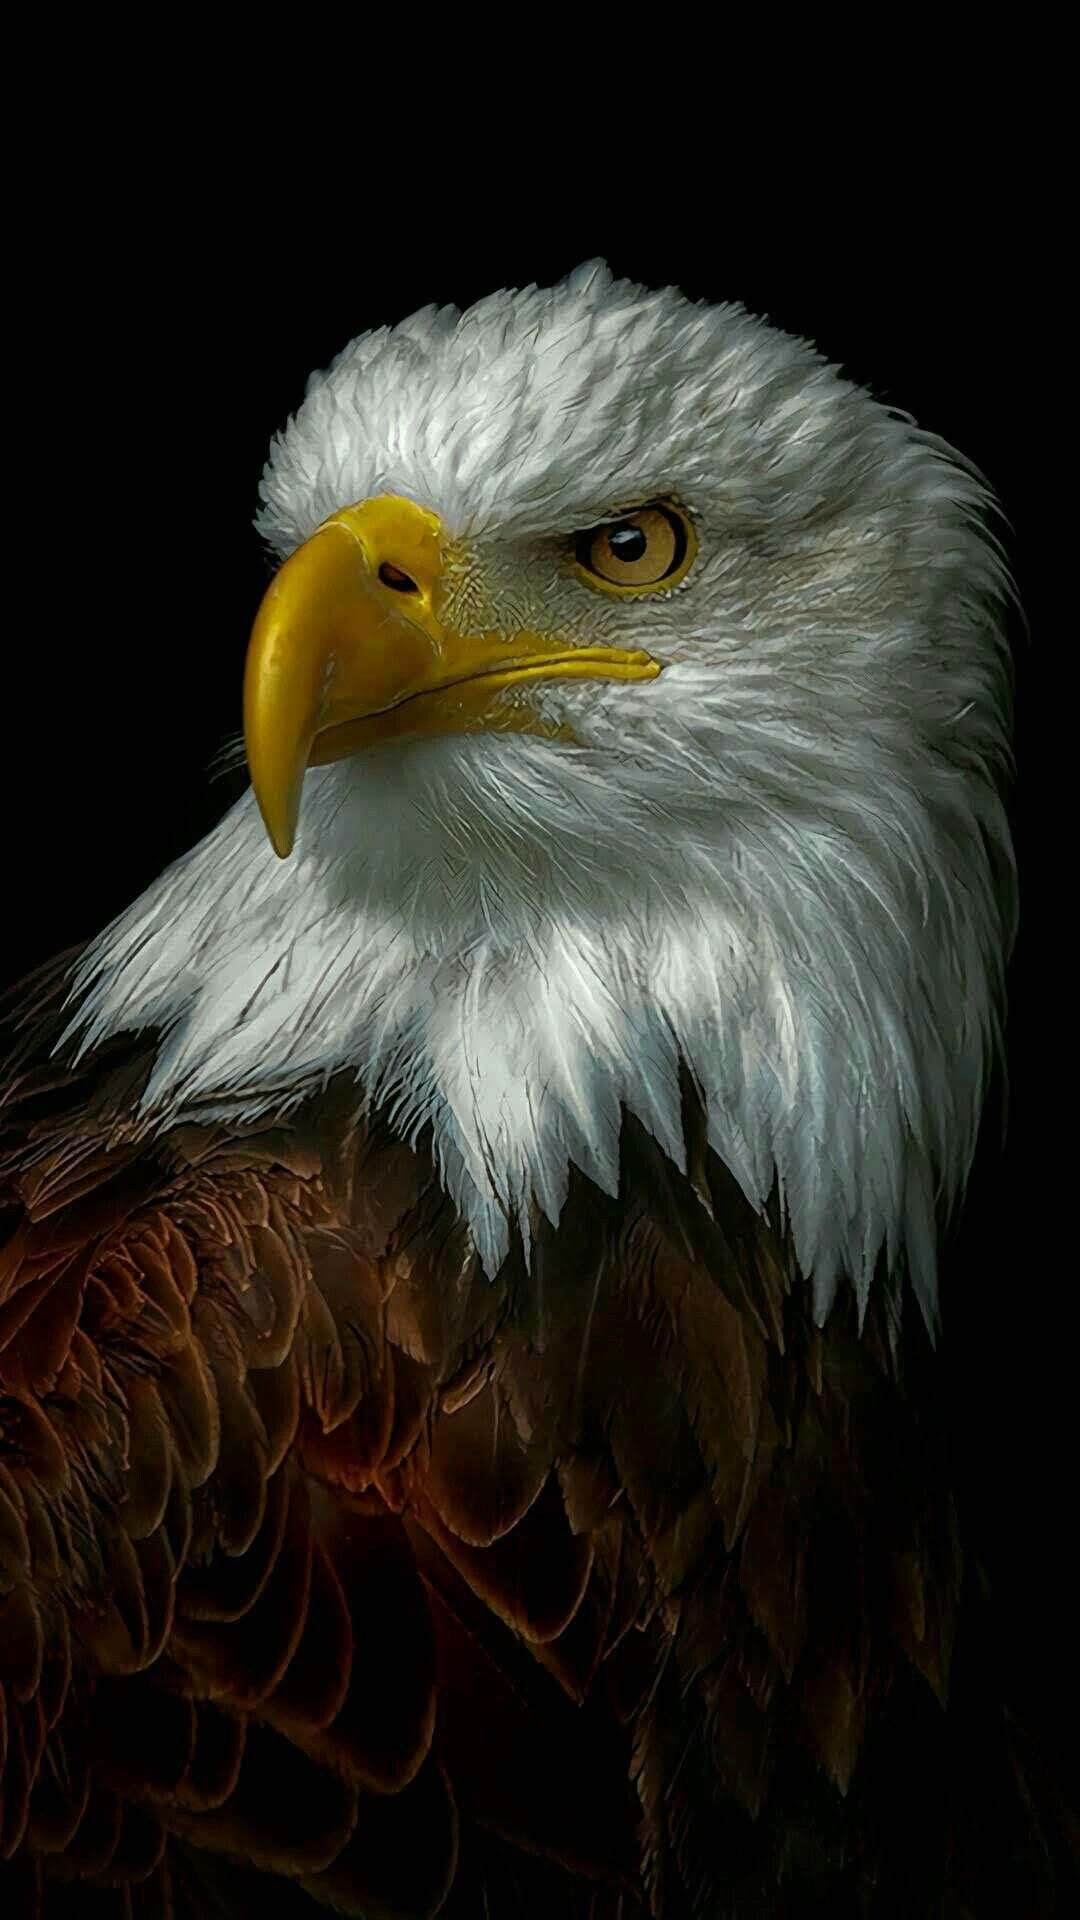 Pin by nur sheela on Birds Bald eagle, Animals, Eagle